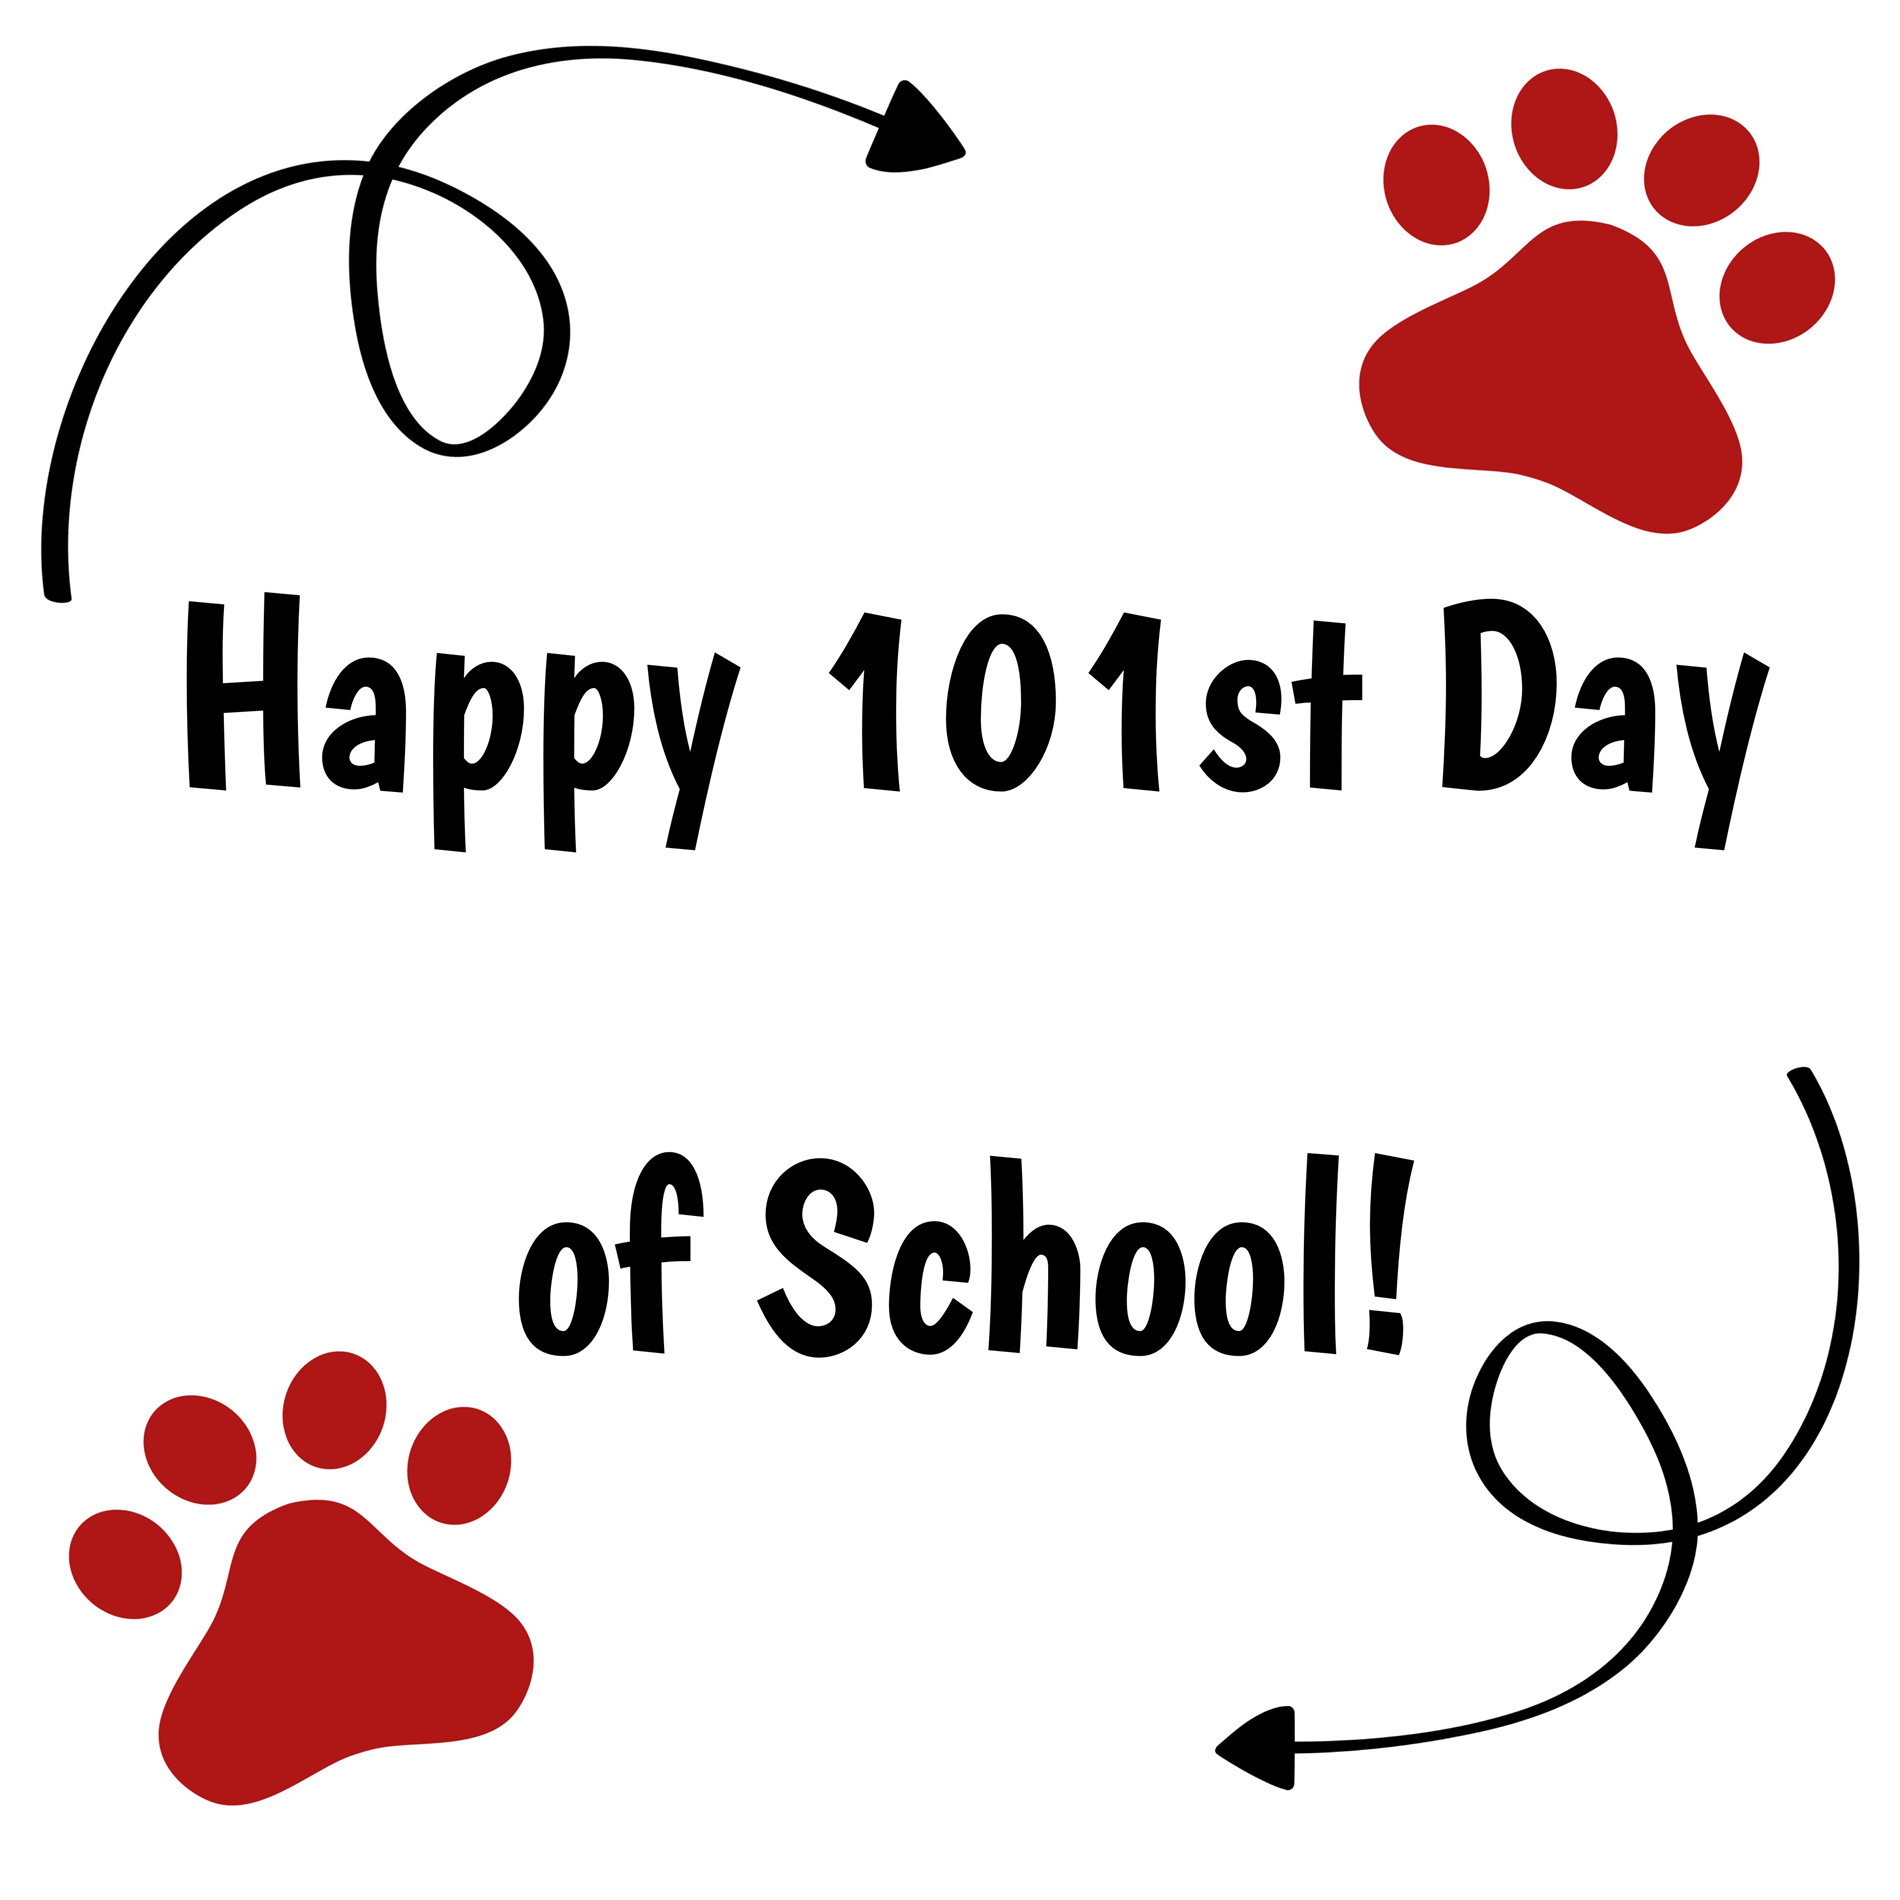 Happy 101st Day of 3rd Grade!